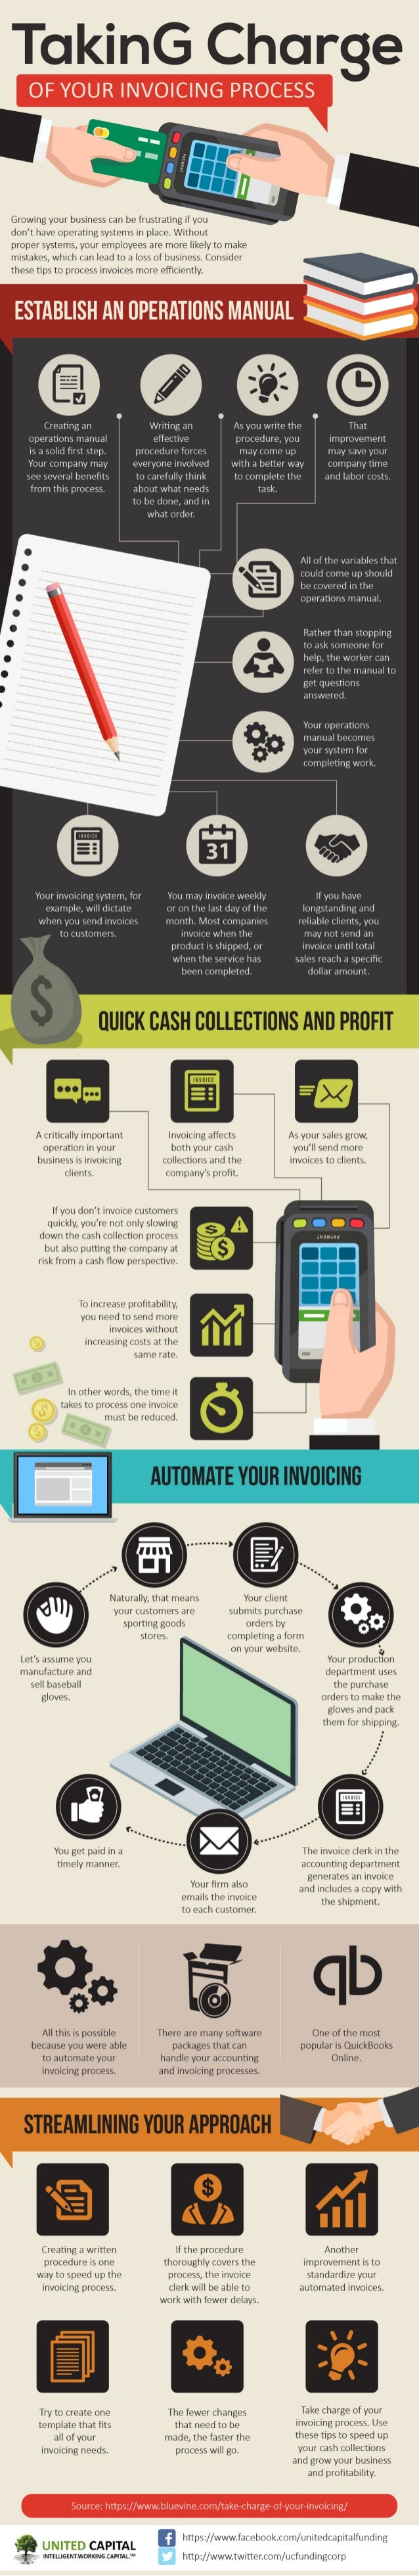 Taking Charge of Your Invoicing Process